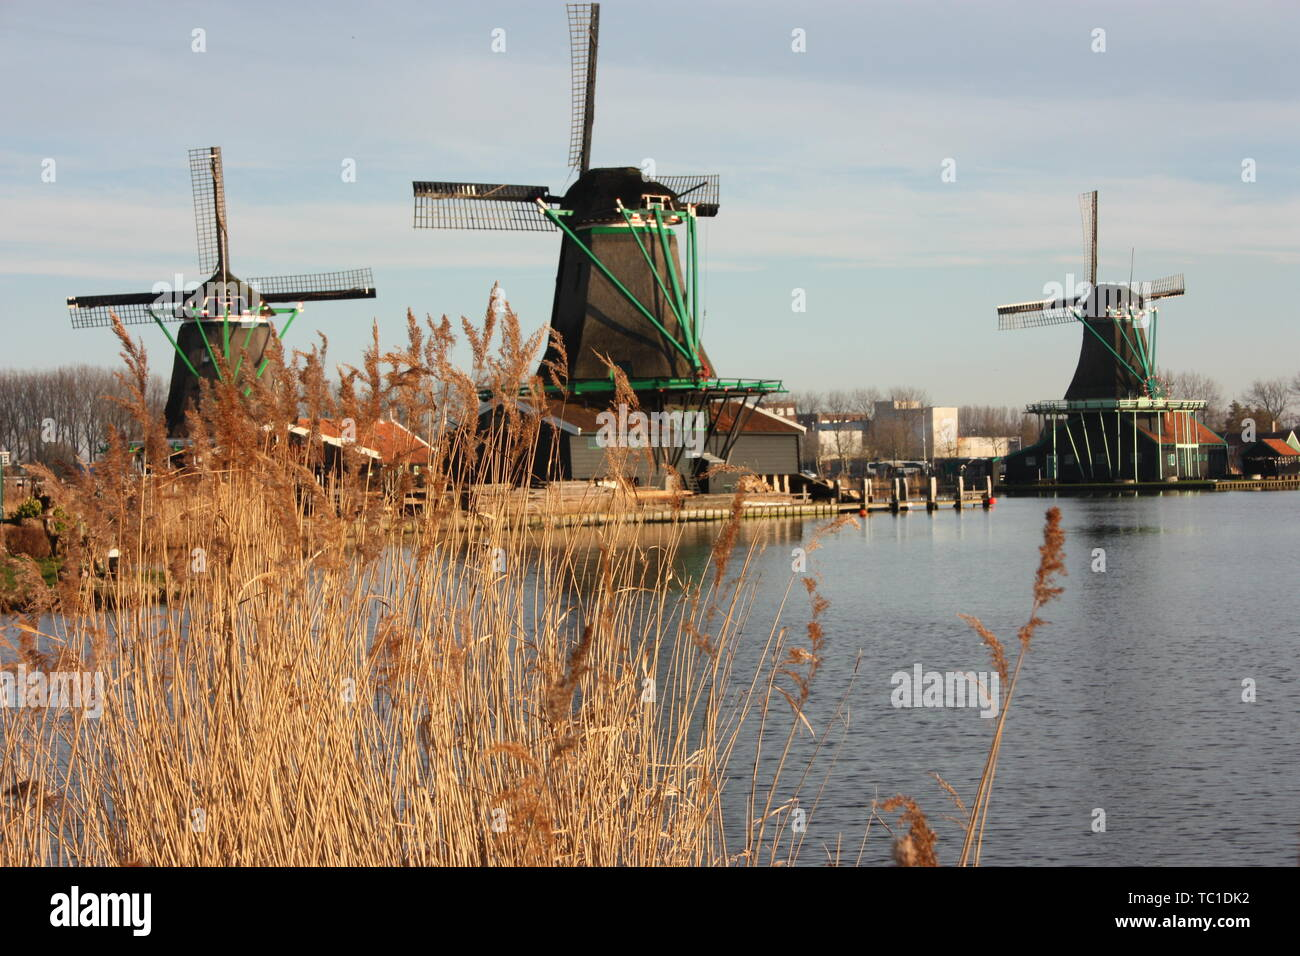 old Dutch windmills made of wood built along the water stream of the Zaan river at sunset time with its warm heat and ears of corn. - Stock Image